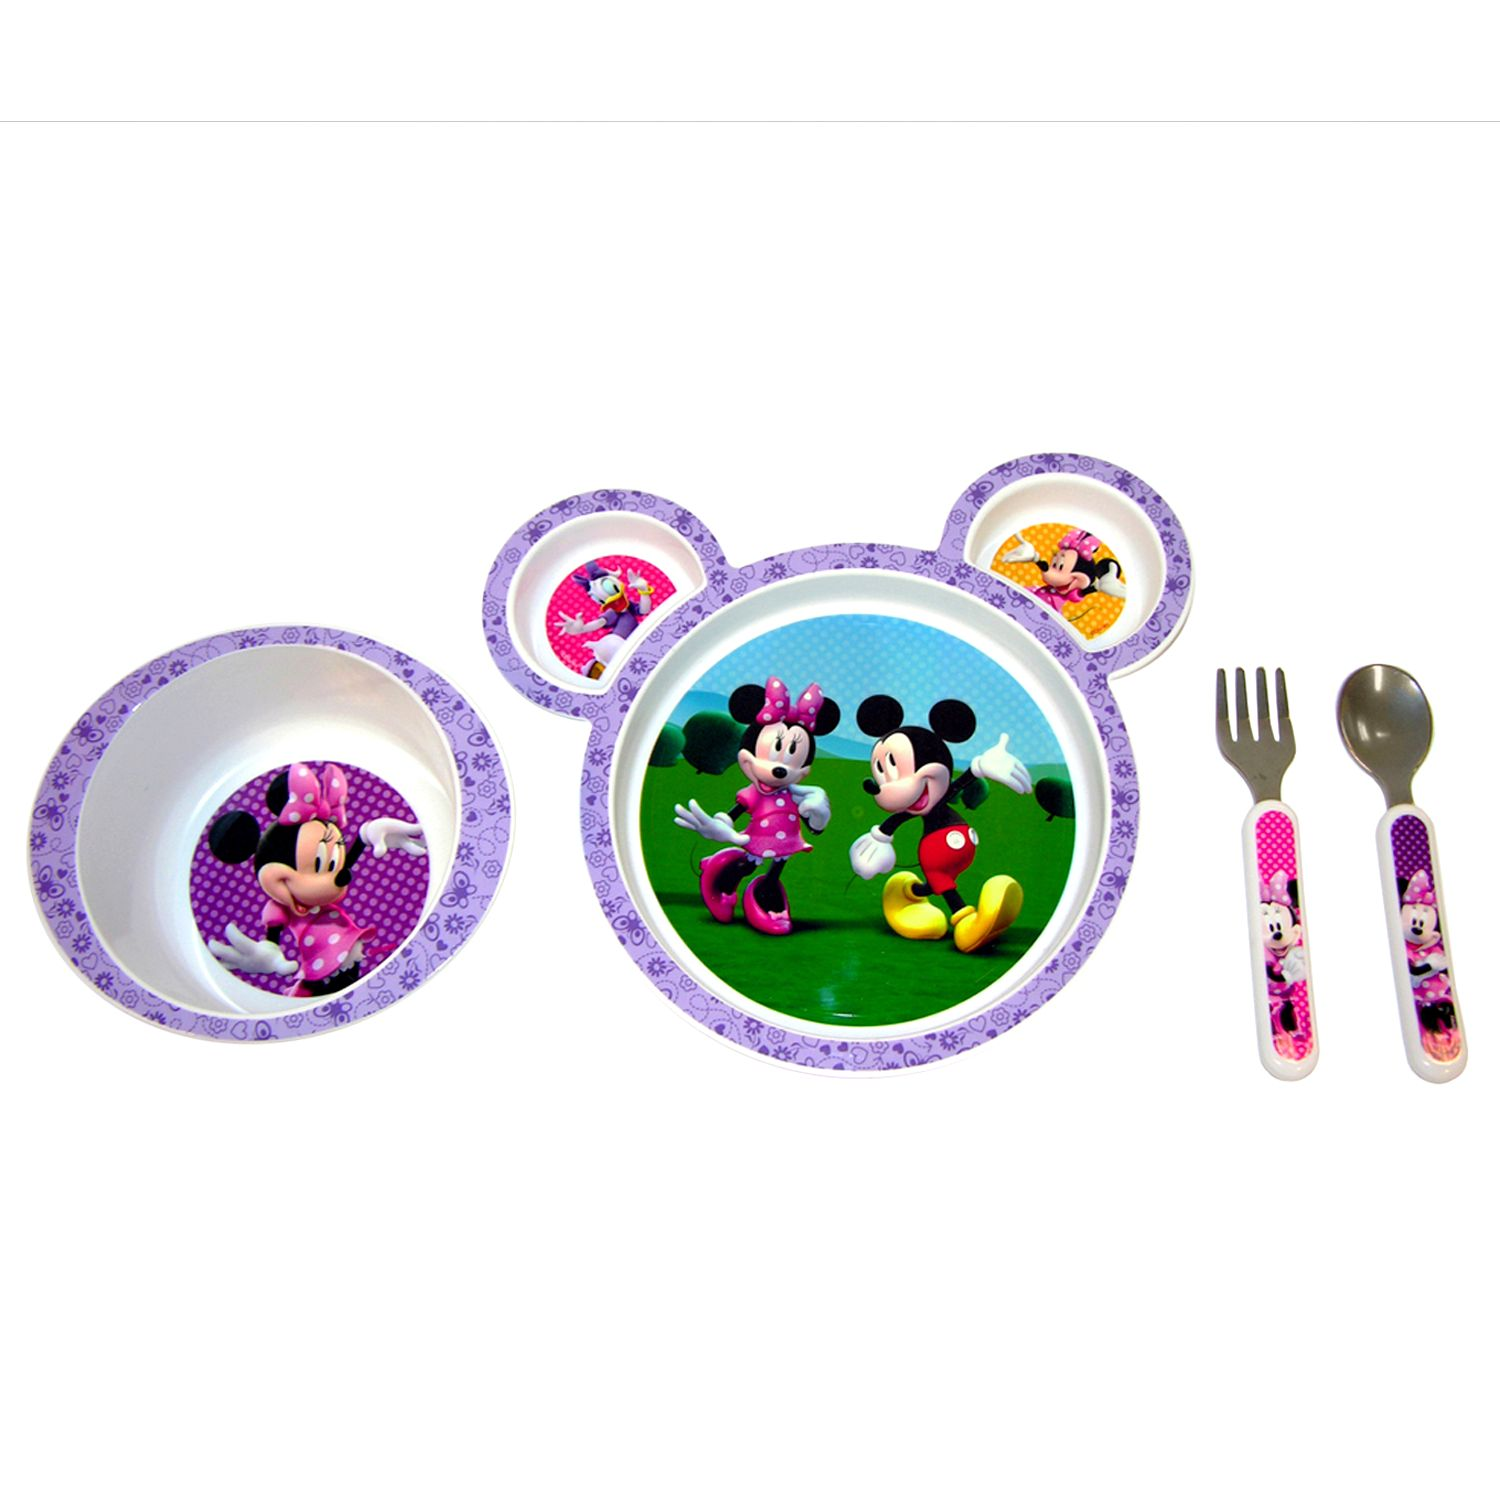 Disney Mickey Mouse u0026 Friends Minnie Mouse 4-pc. Feeding Set by The First Years  sc 1 st  Kohlu0027s & Disney Mickey Mouse u0026 Friends Minnie Mouse 4-pc. Feeding Set by The ...